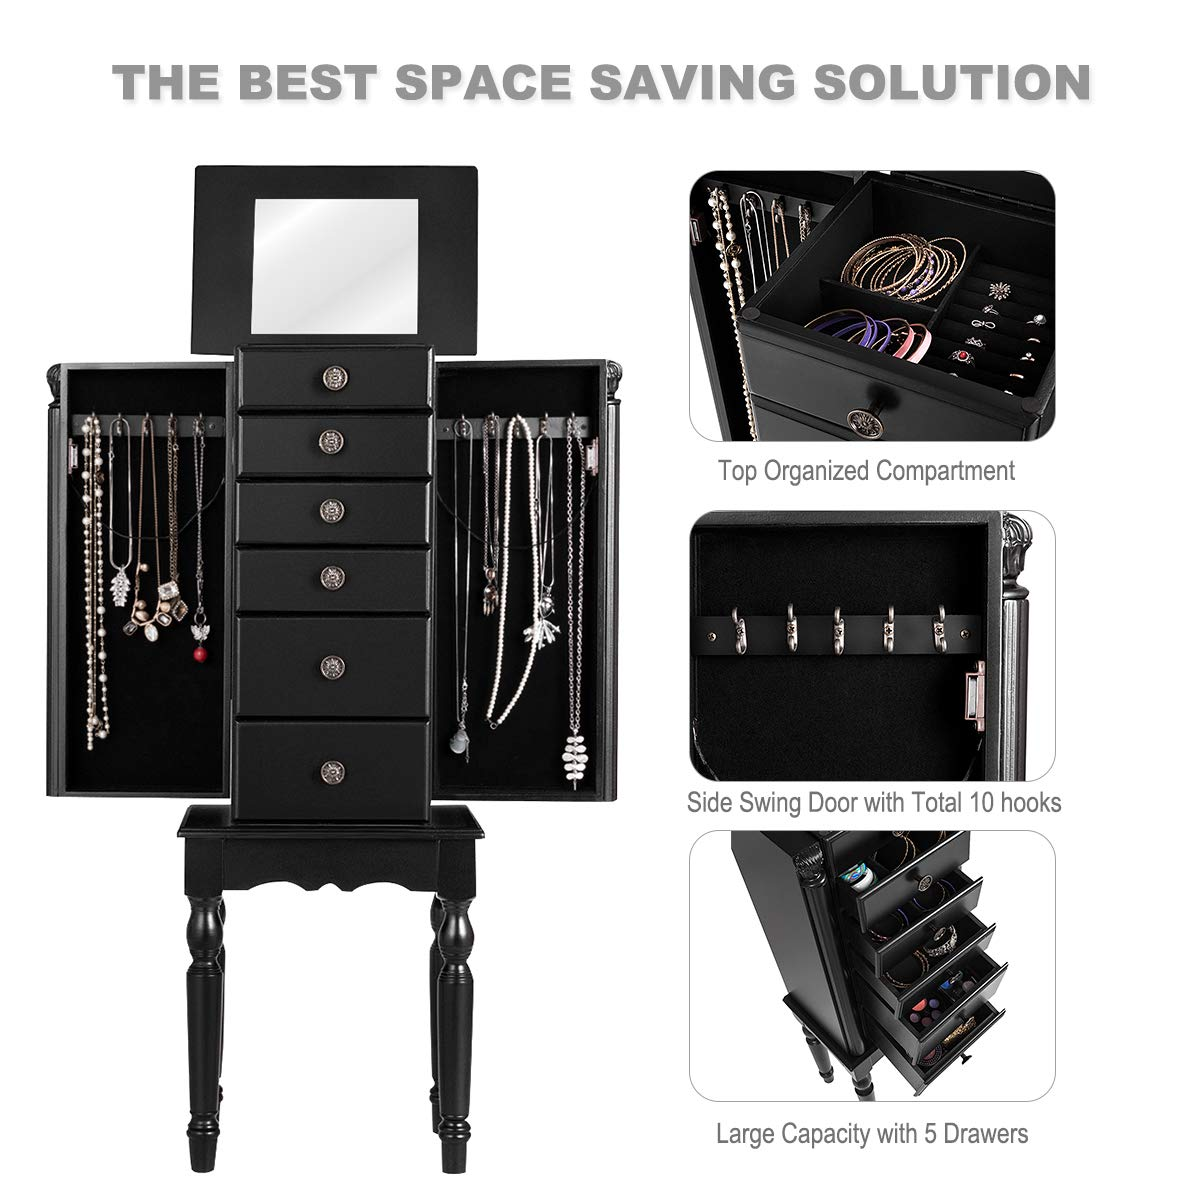 Giantex Jewelry Armoire Chest Cabinet Storage Box with Top Flip Makeup Mirror Large Standing Organizer for Bedroom 10 Necklace Hooks Space Saving Side Swing Doors Jewelry Armoires w// 5 Drawers Black